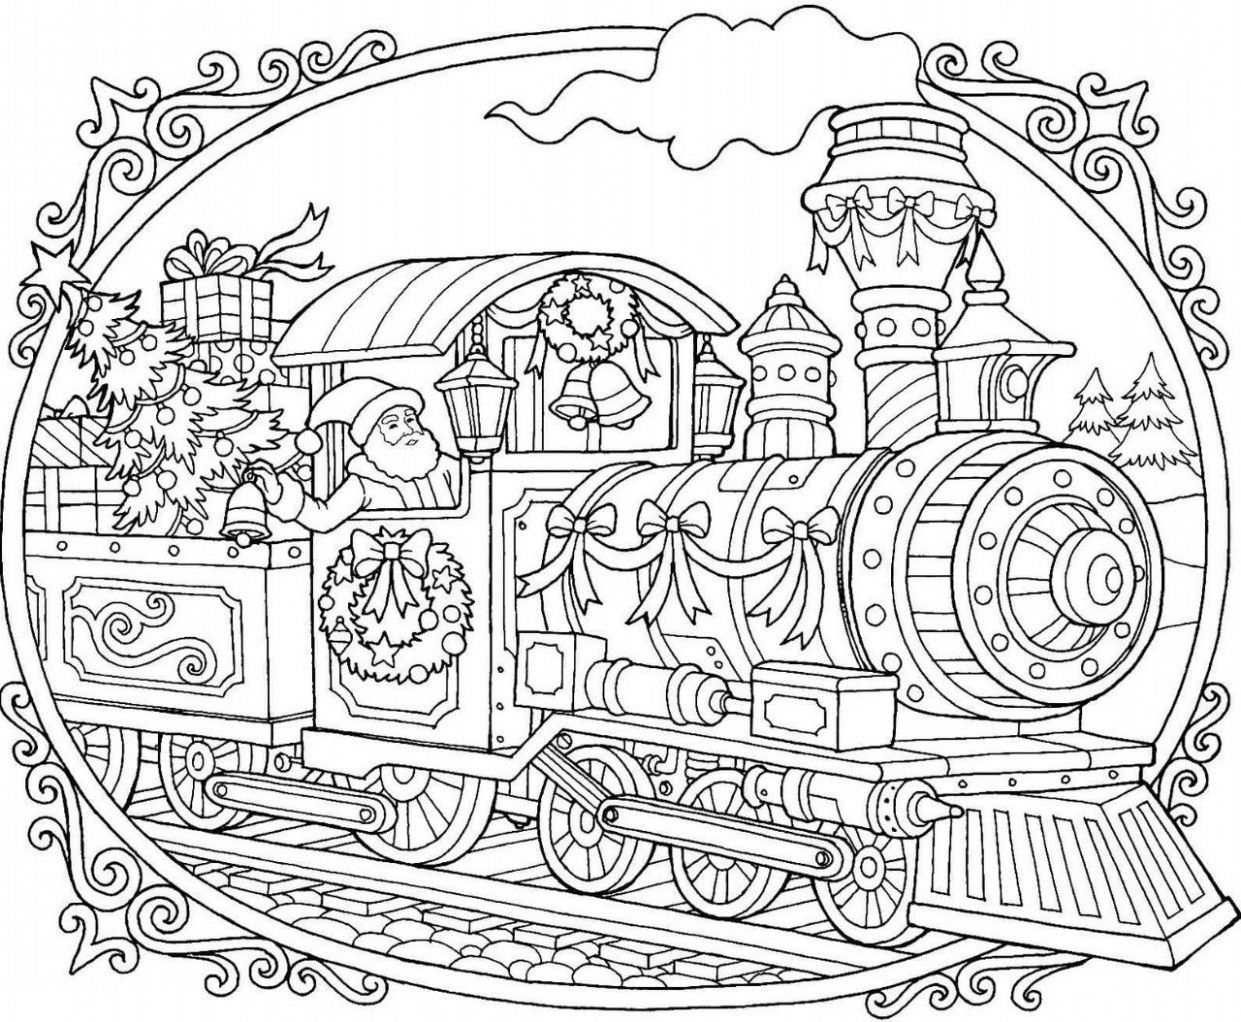 Pin By Peggy Gerald On Color Pages Train Coloring Pages Coloring Pages Space Coloring Pages